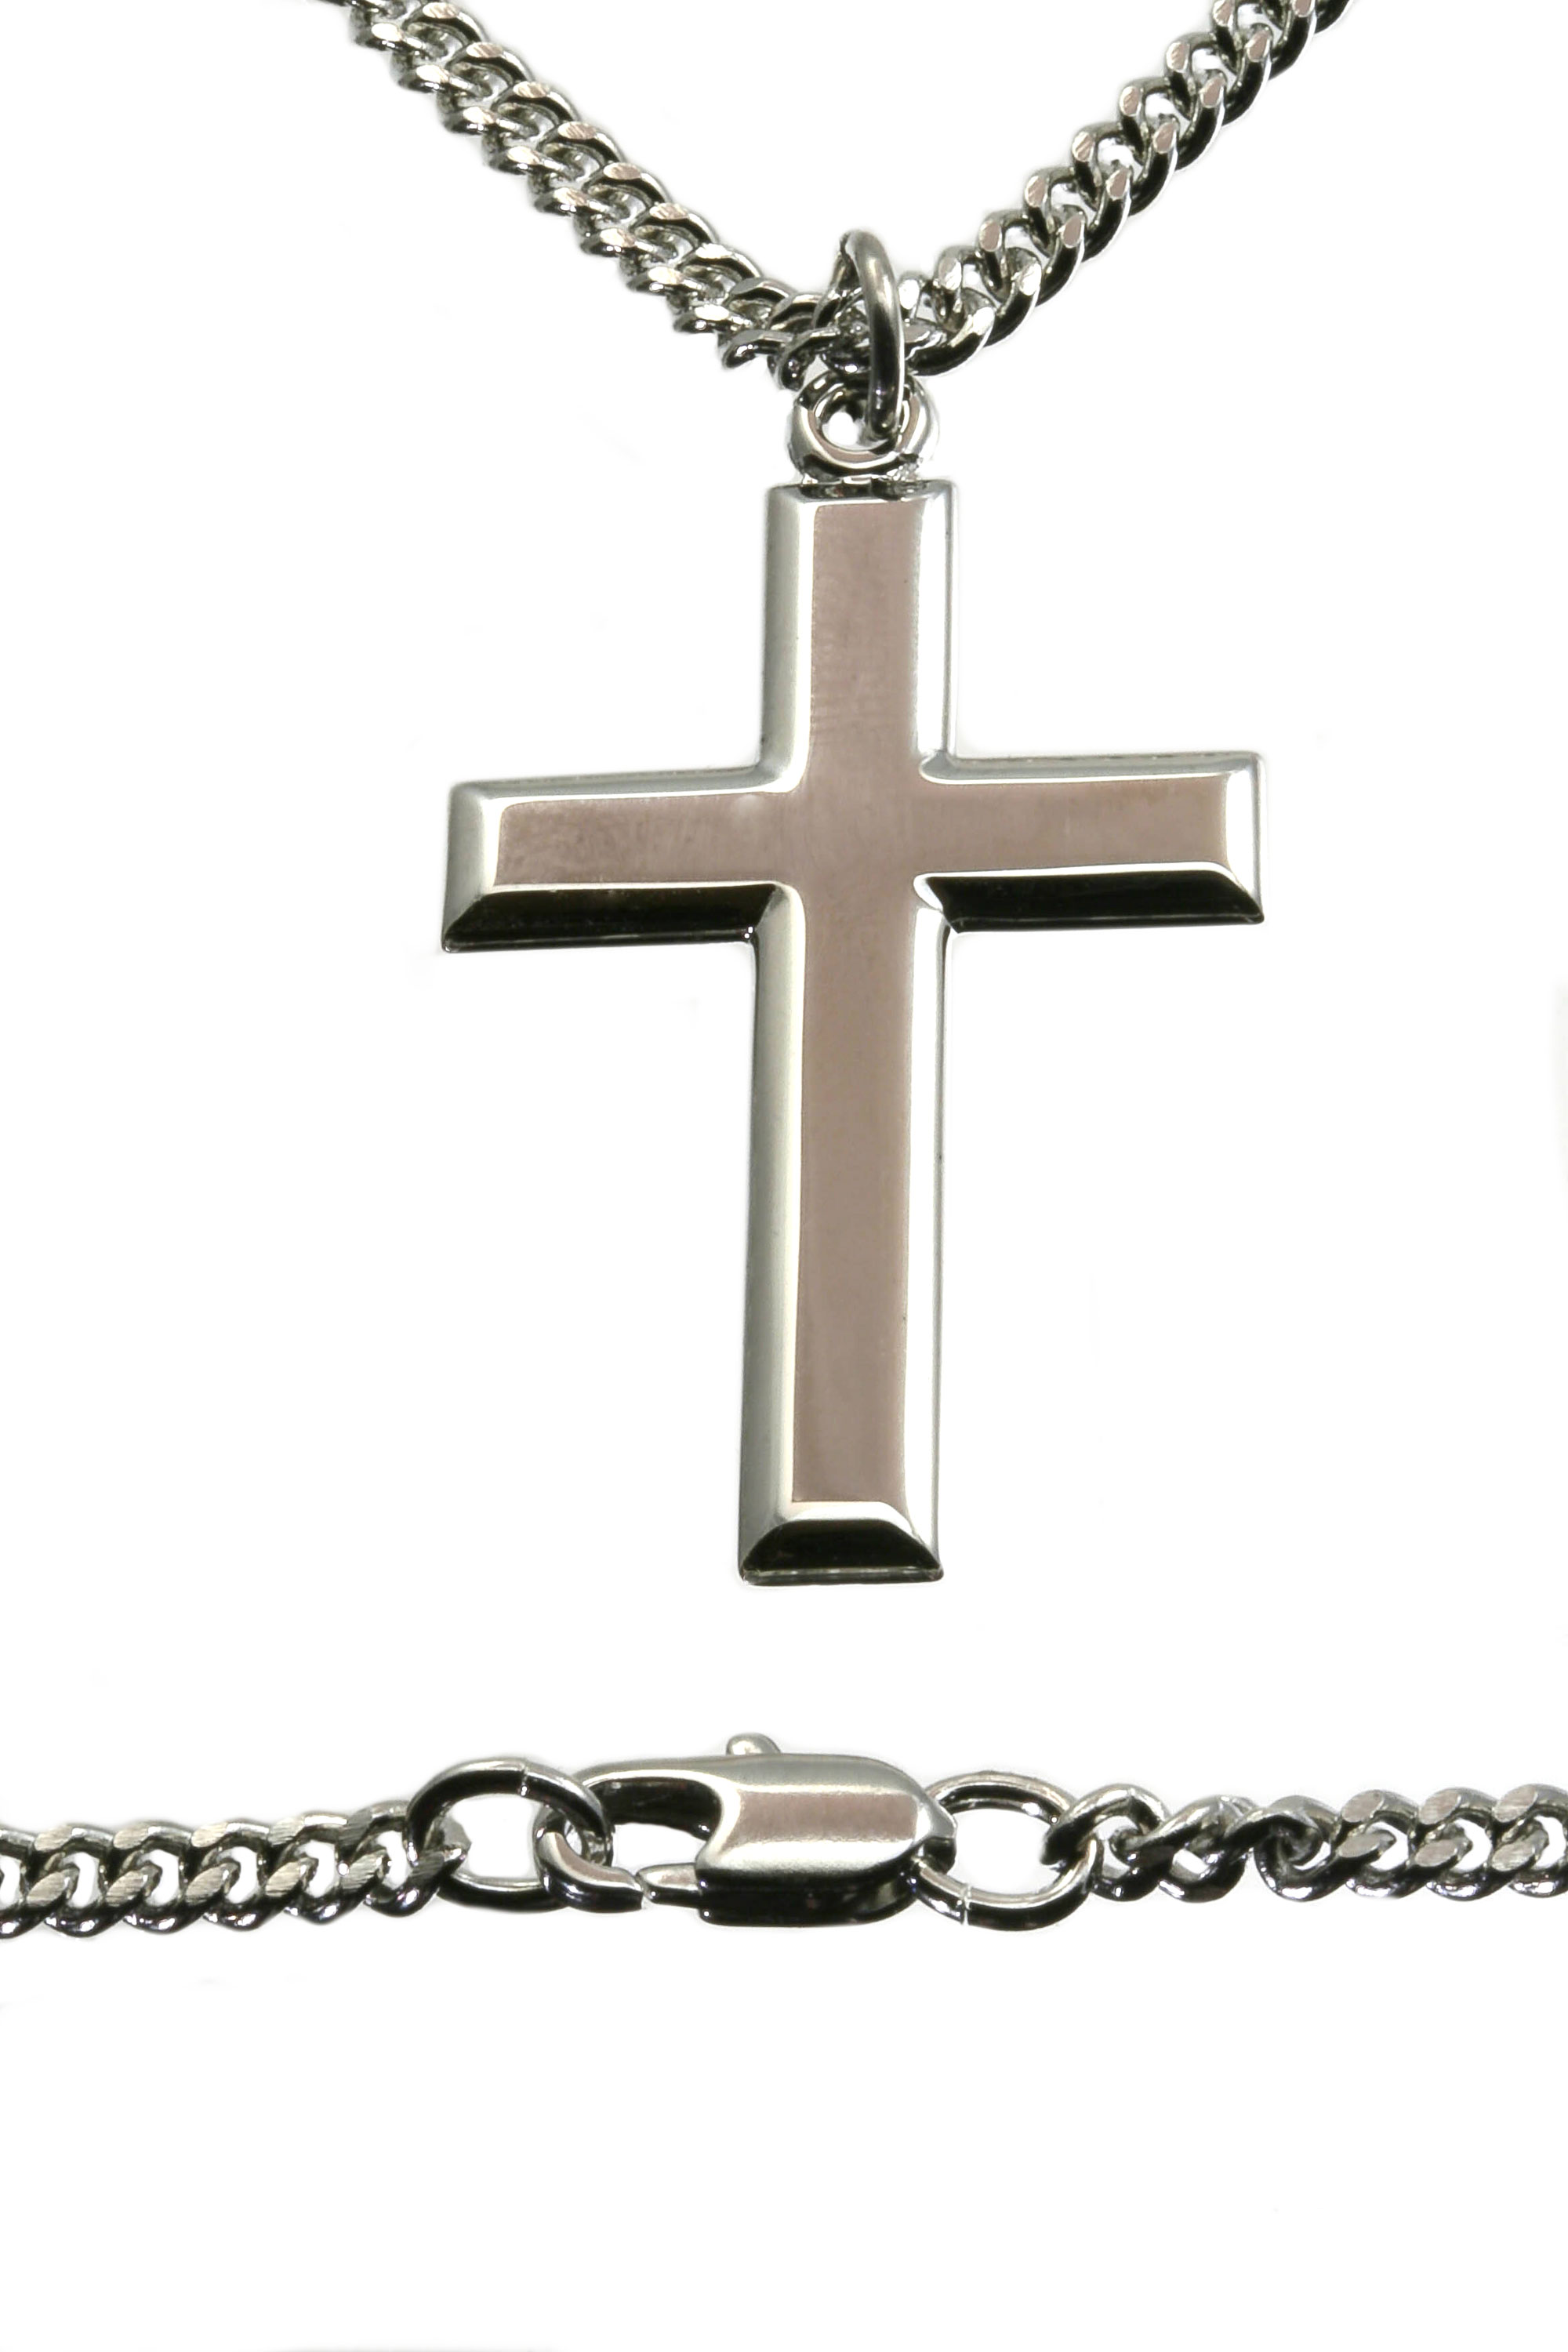 Cross Pendant Necklace For Men Silver Bliss